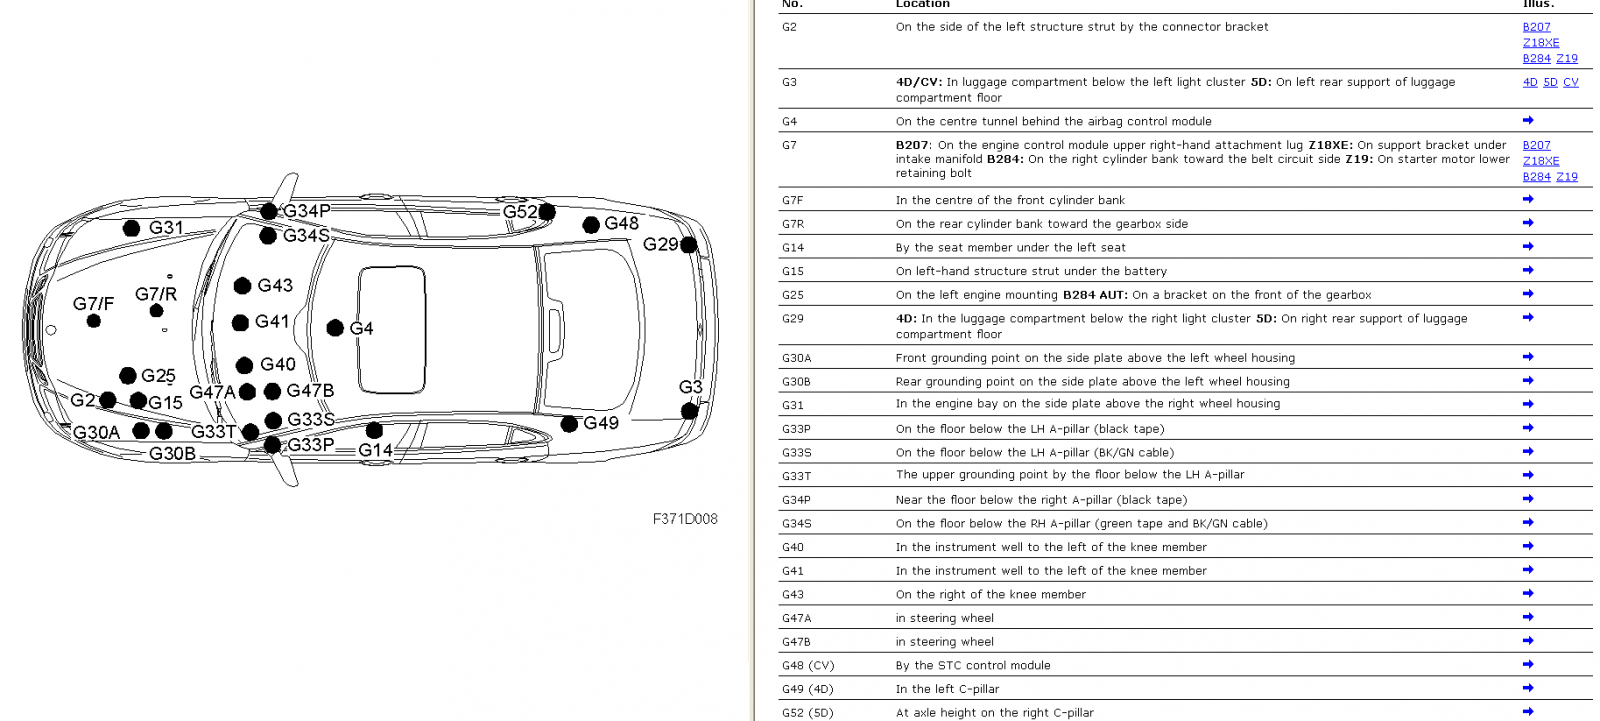 Saab 9-3 Grounding points (1).png